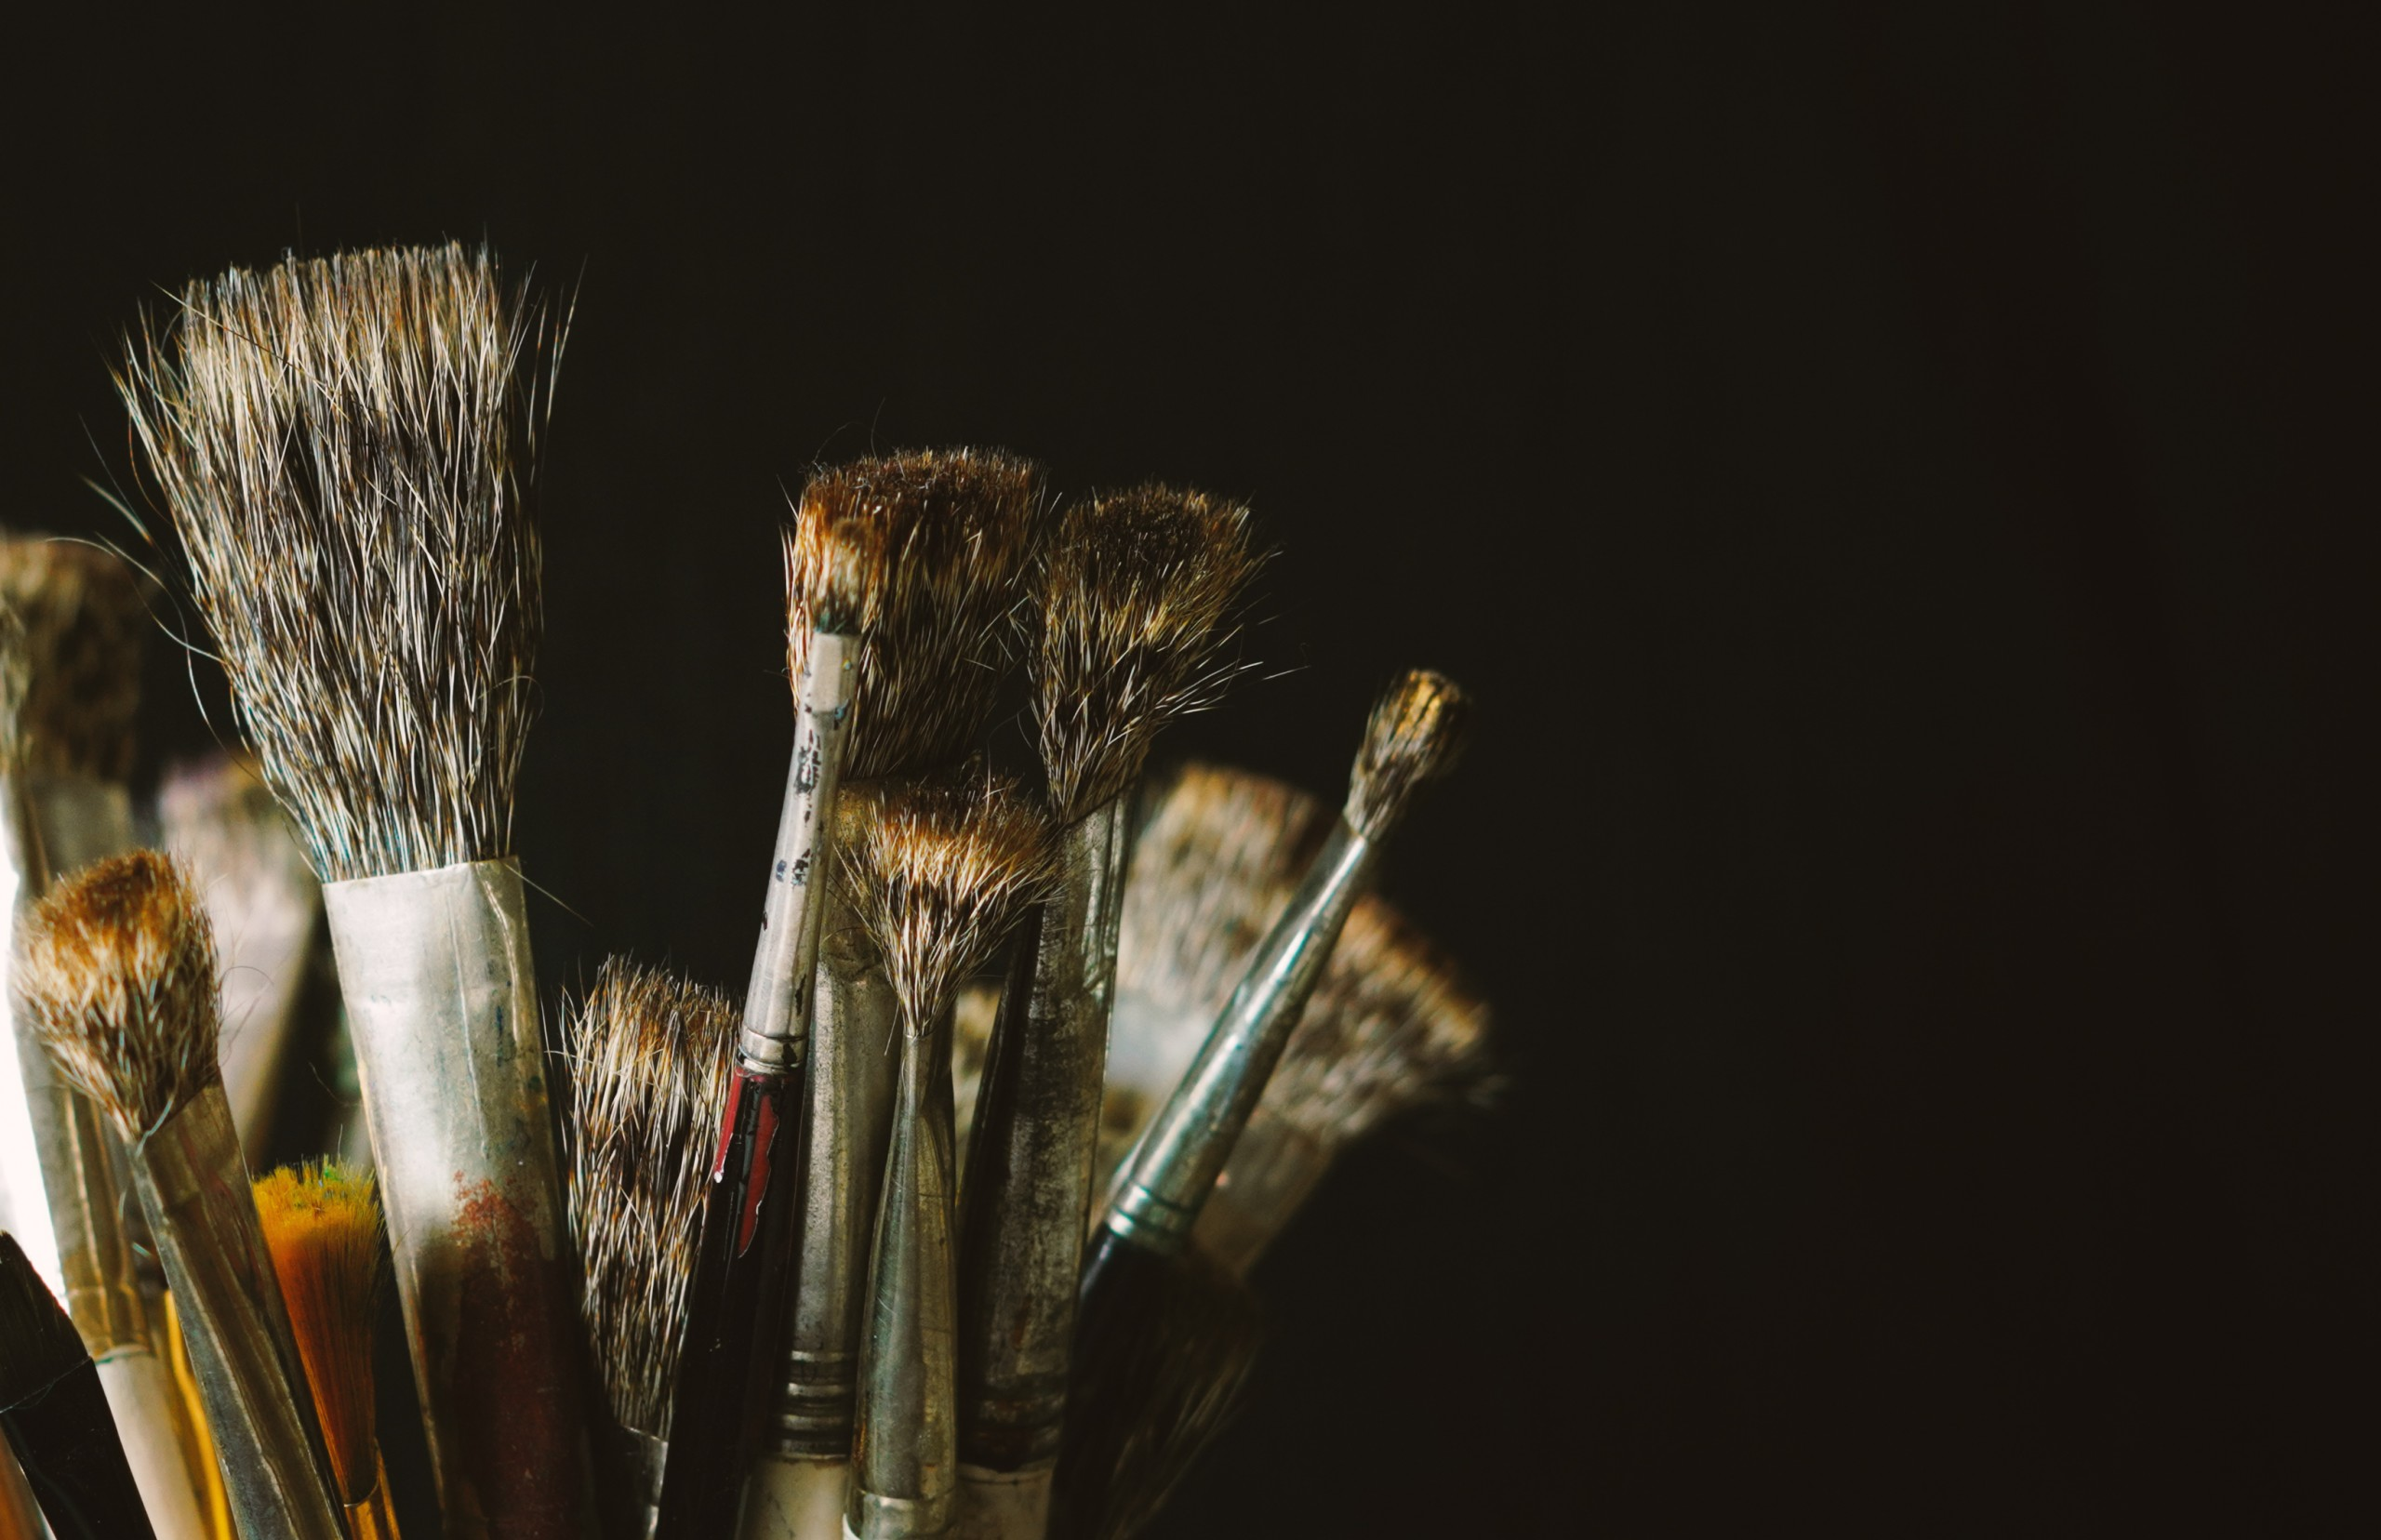 Close-up Painting Brushes